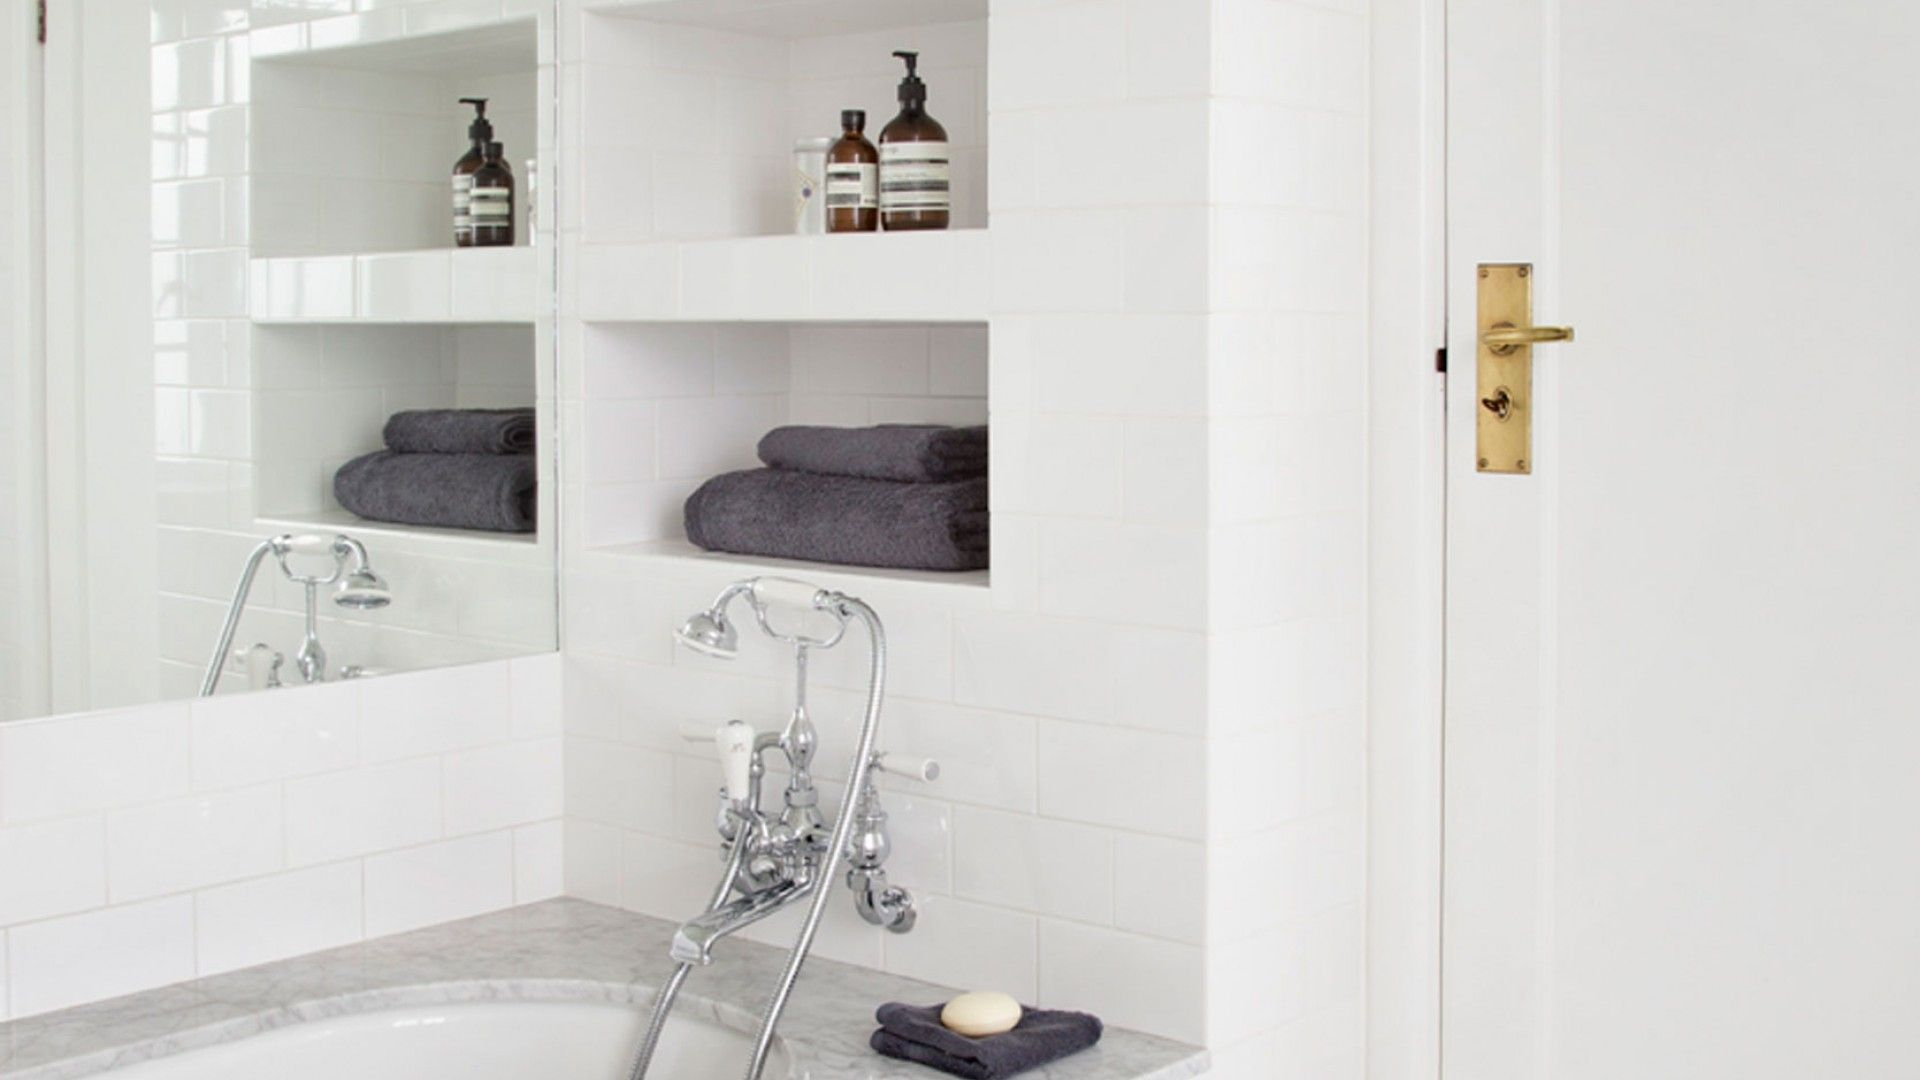 Bright White Modern Bathroom with Recessed Shelving | Home ...